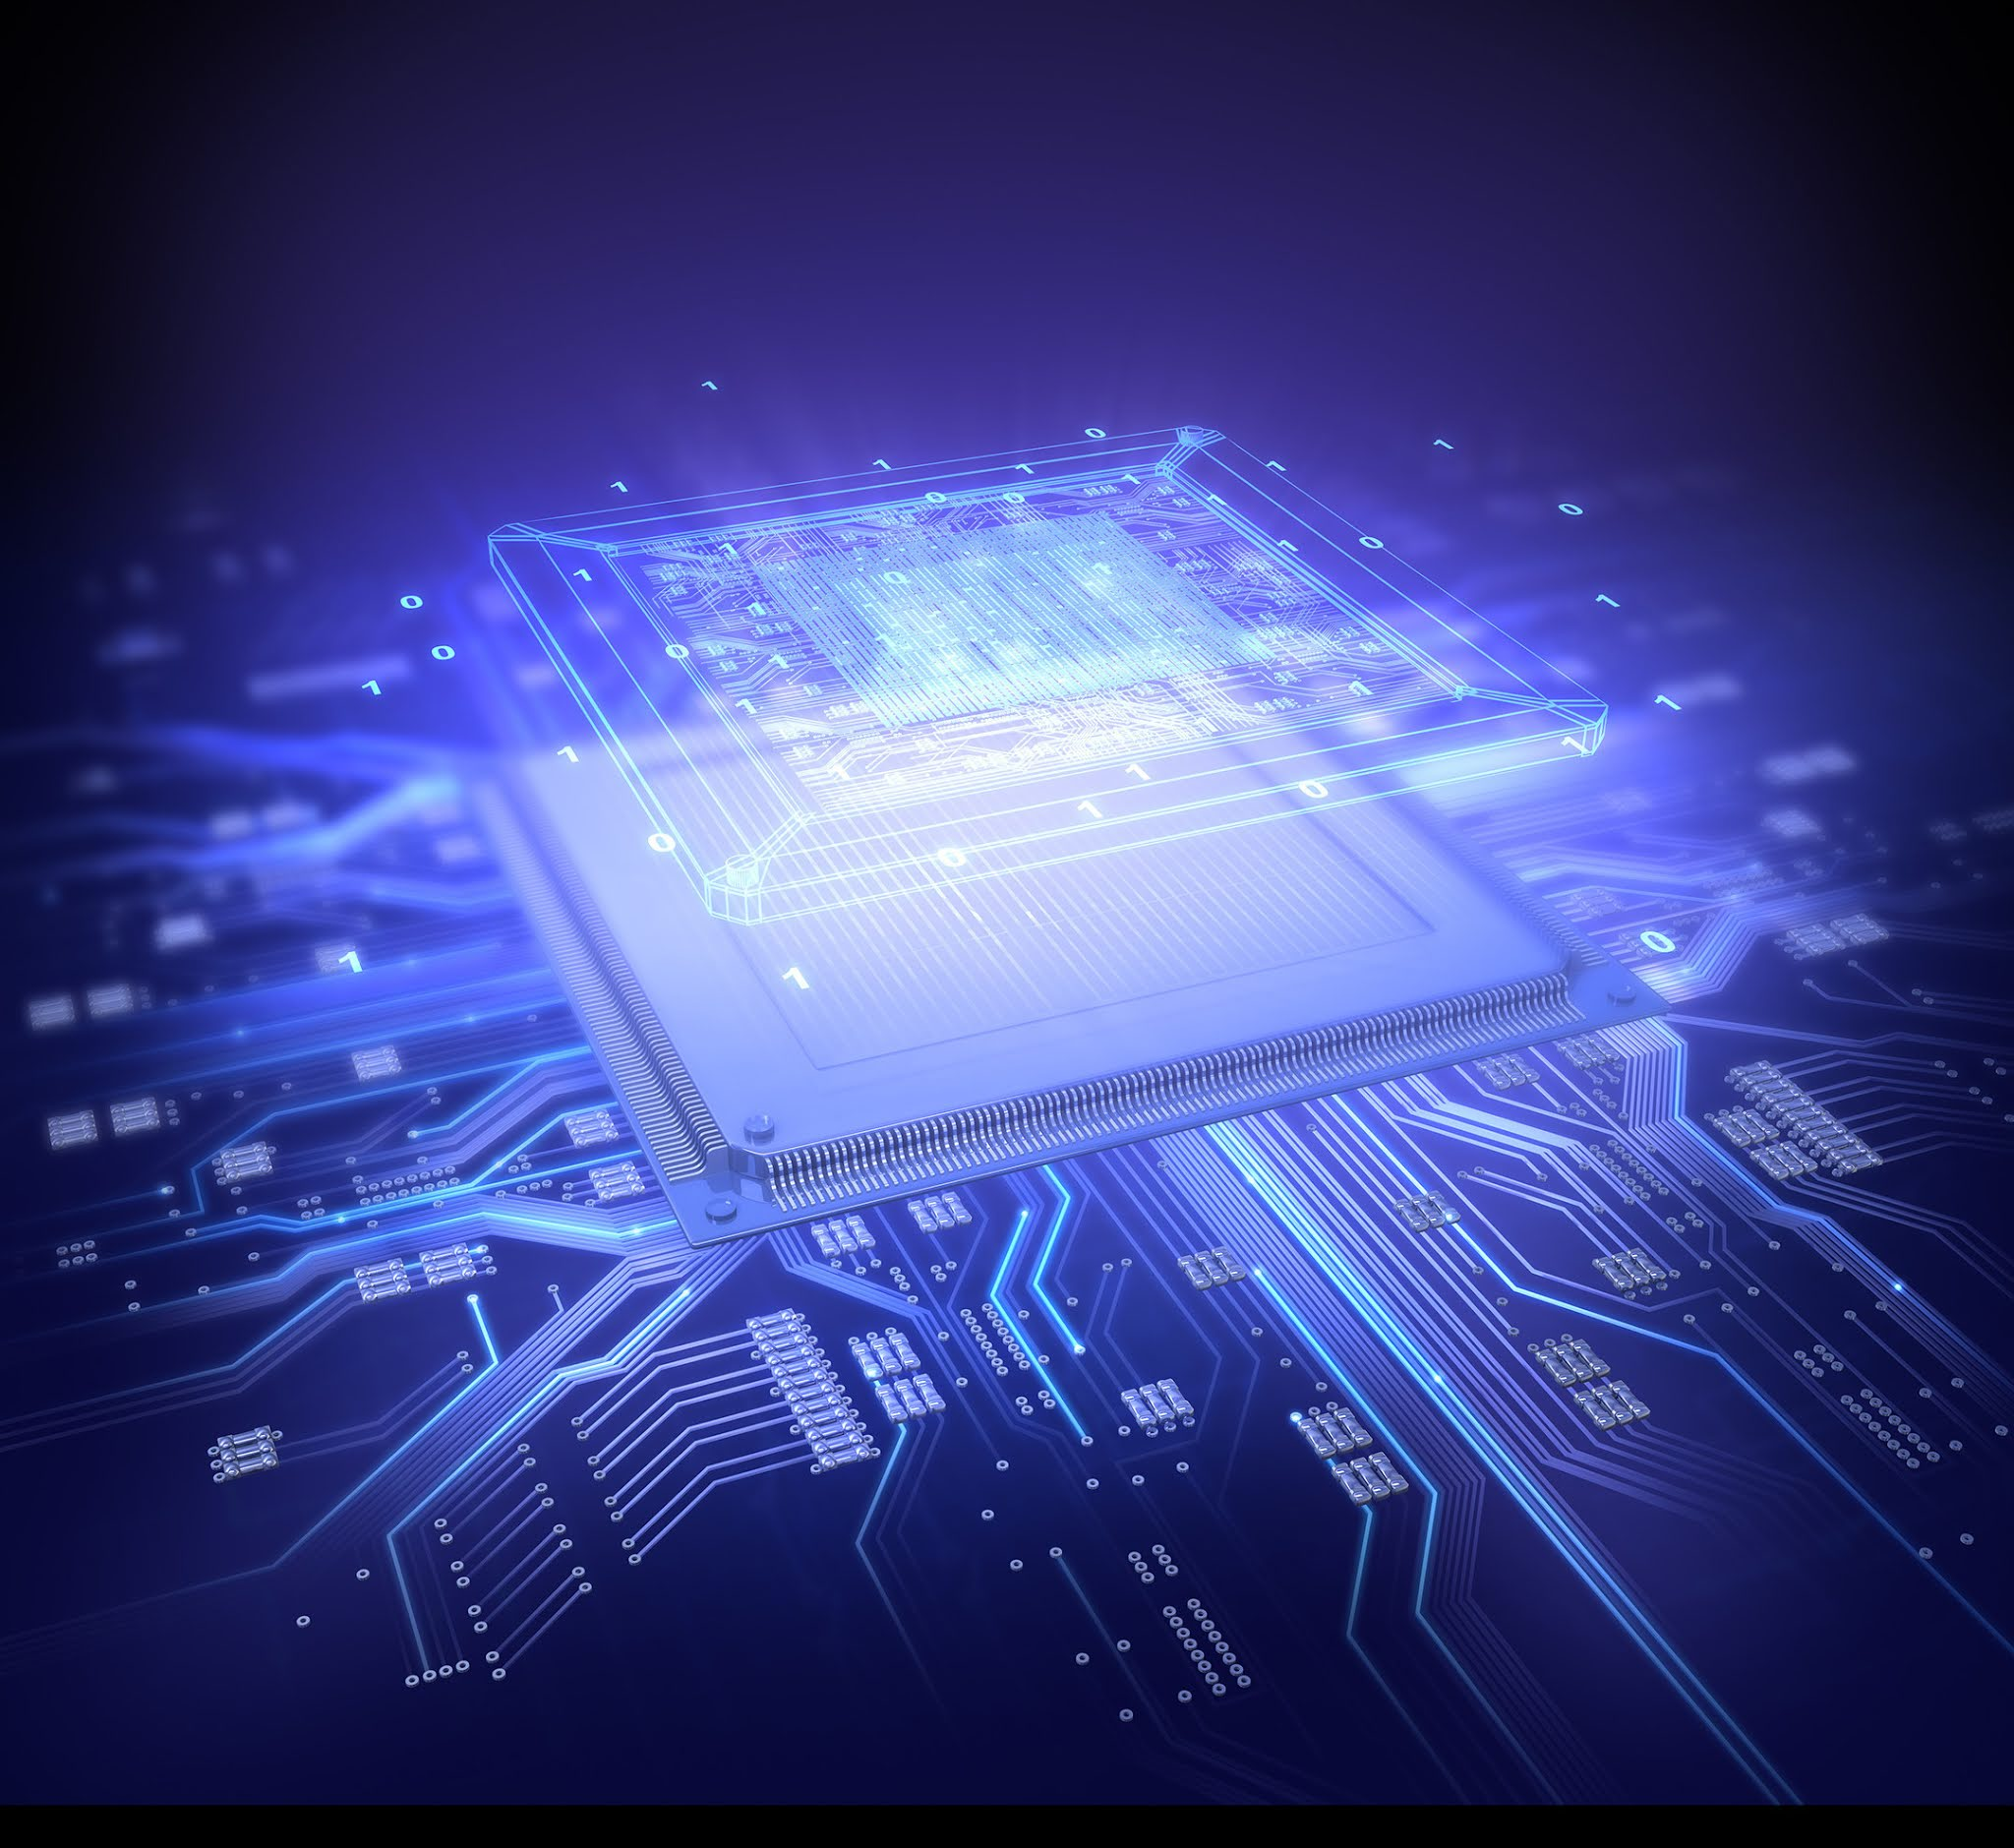 Siemens expands industry-leading IC verification portfolio with acquisition of Fractal Technologies